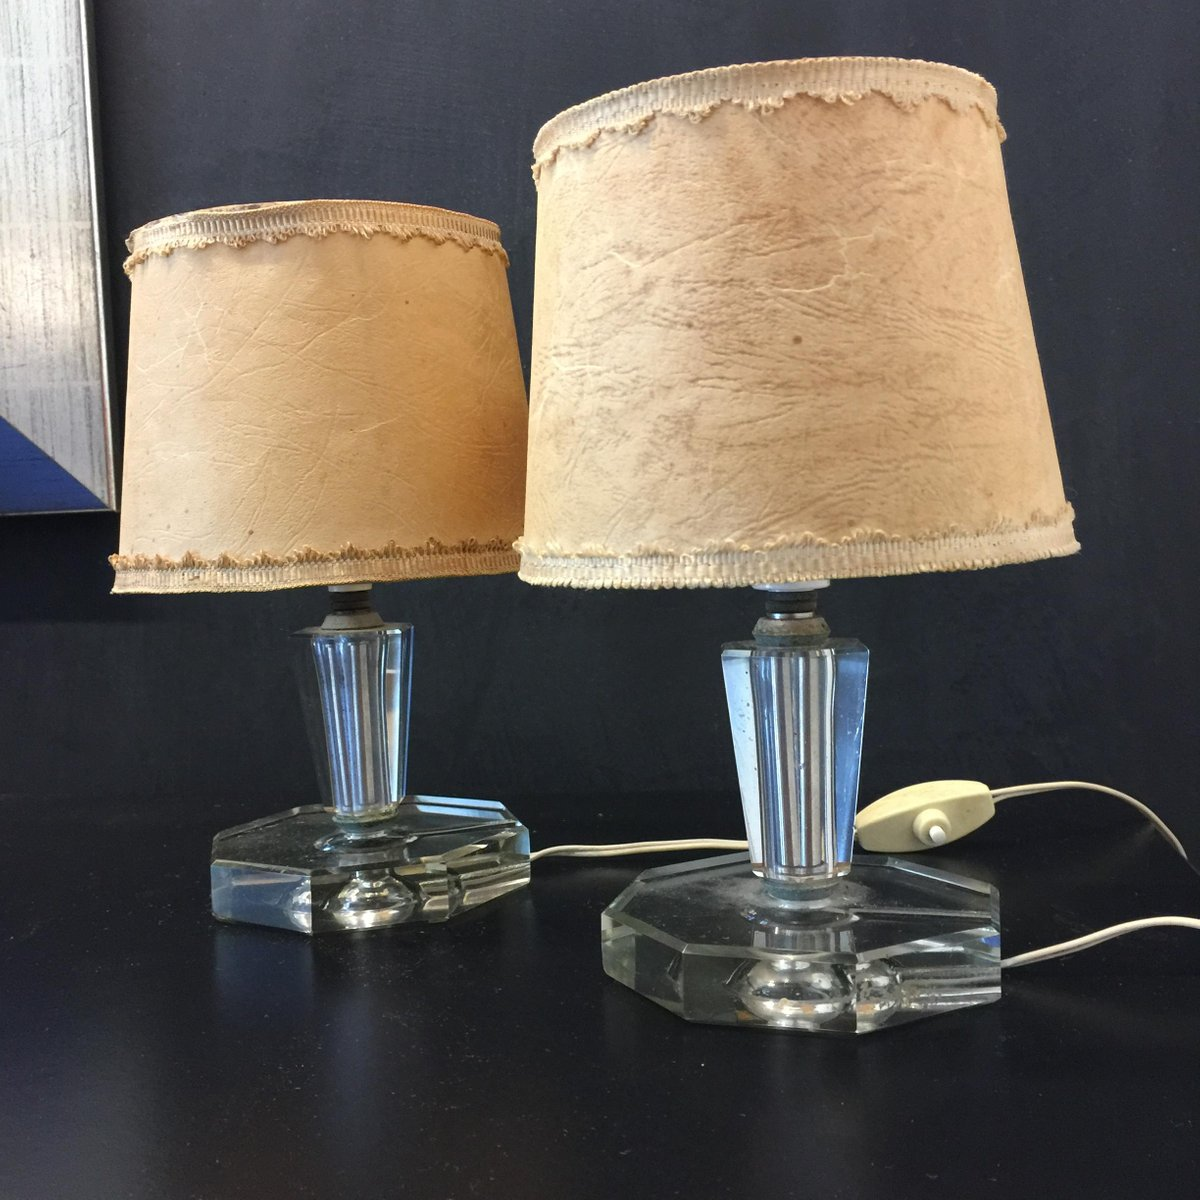 Vintage Italian Glass Table Lamps from Cristal Art 1950s Set of